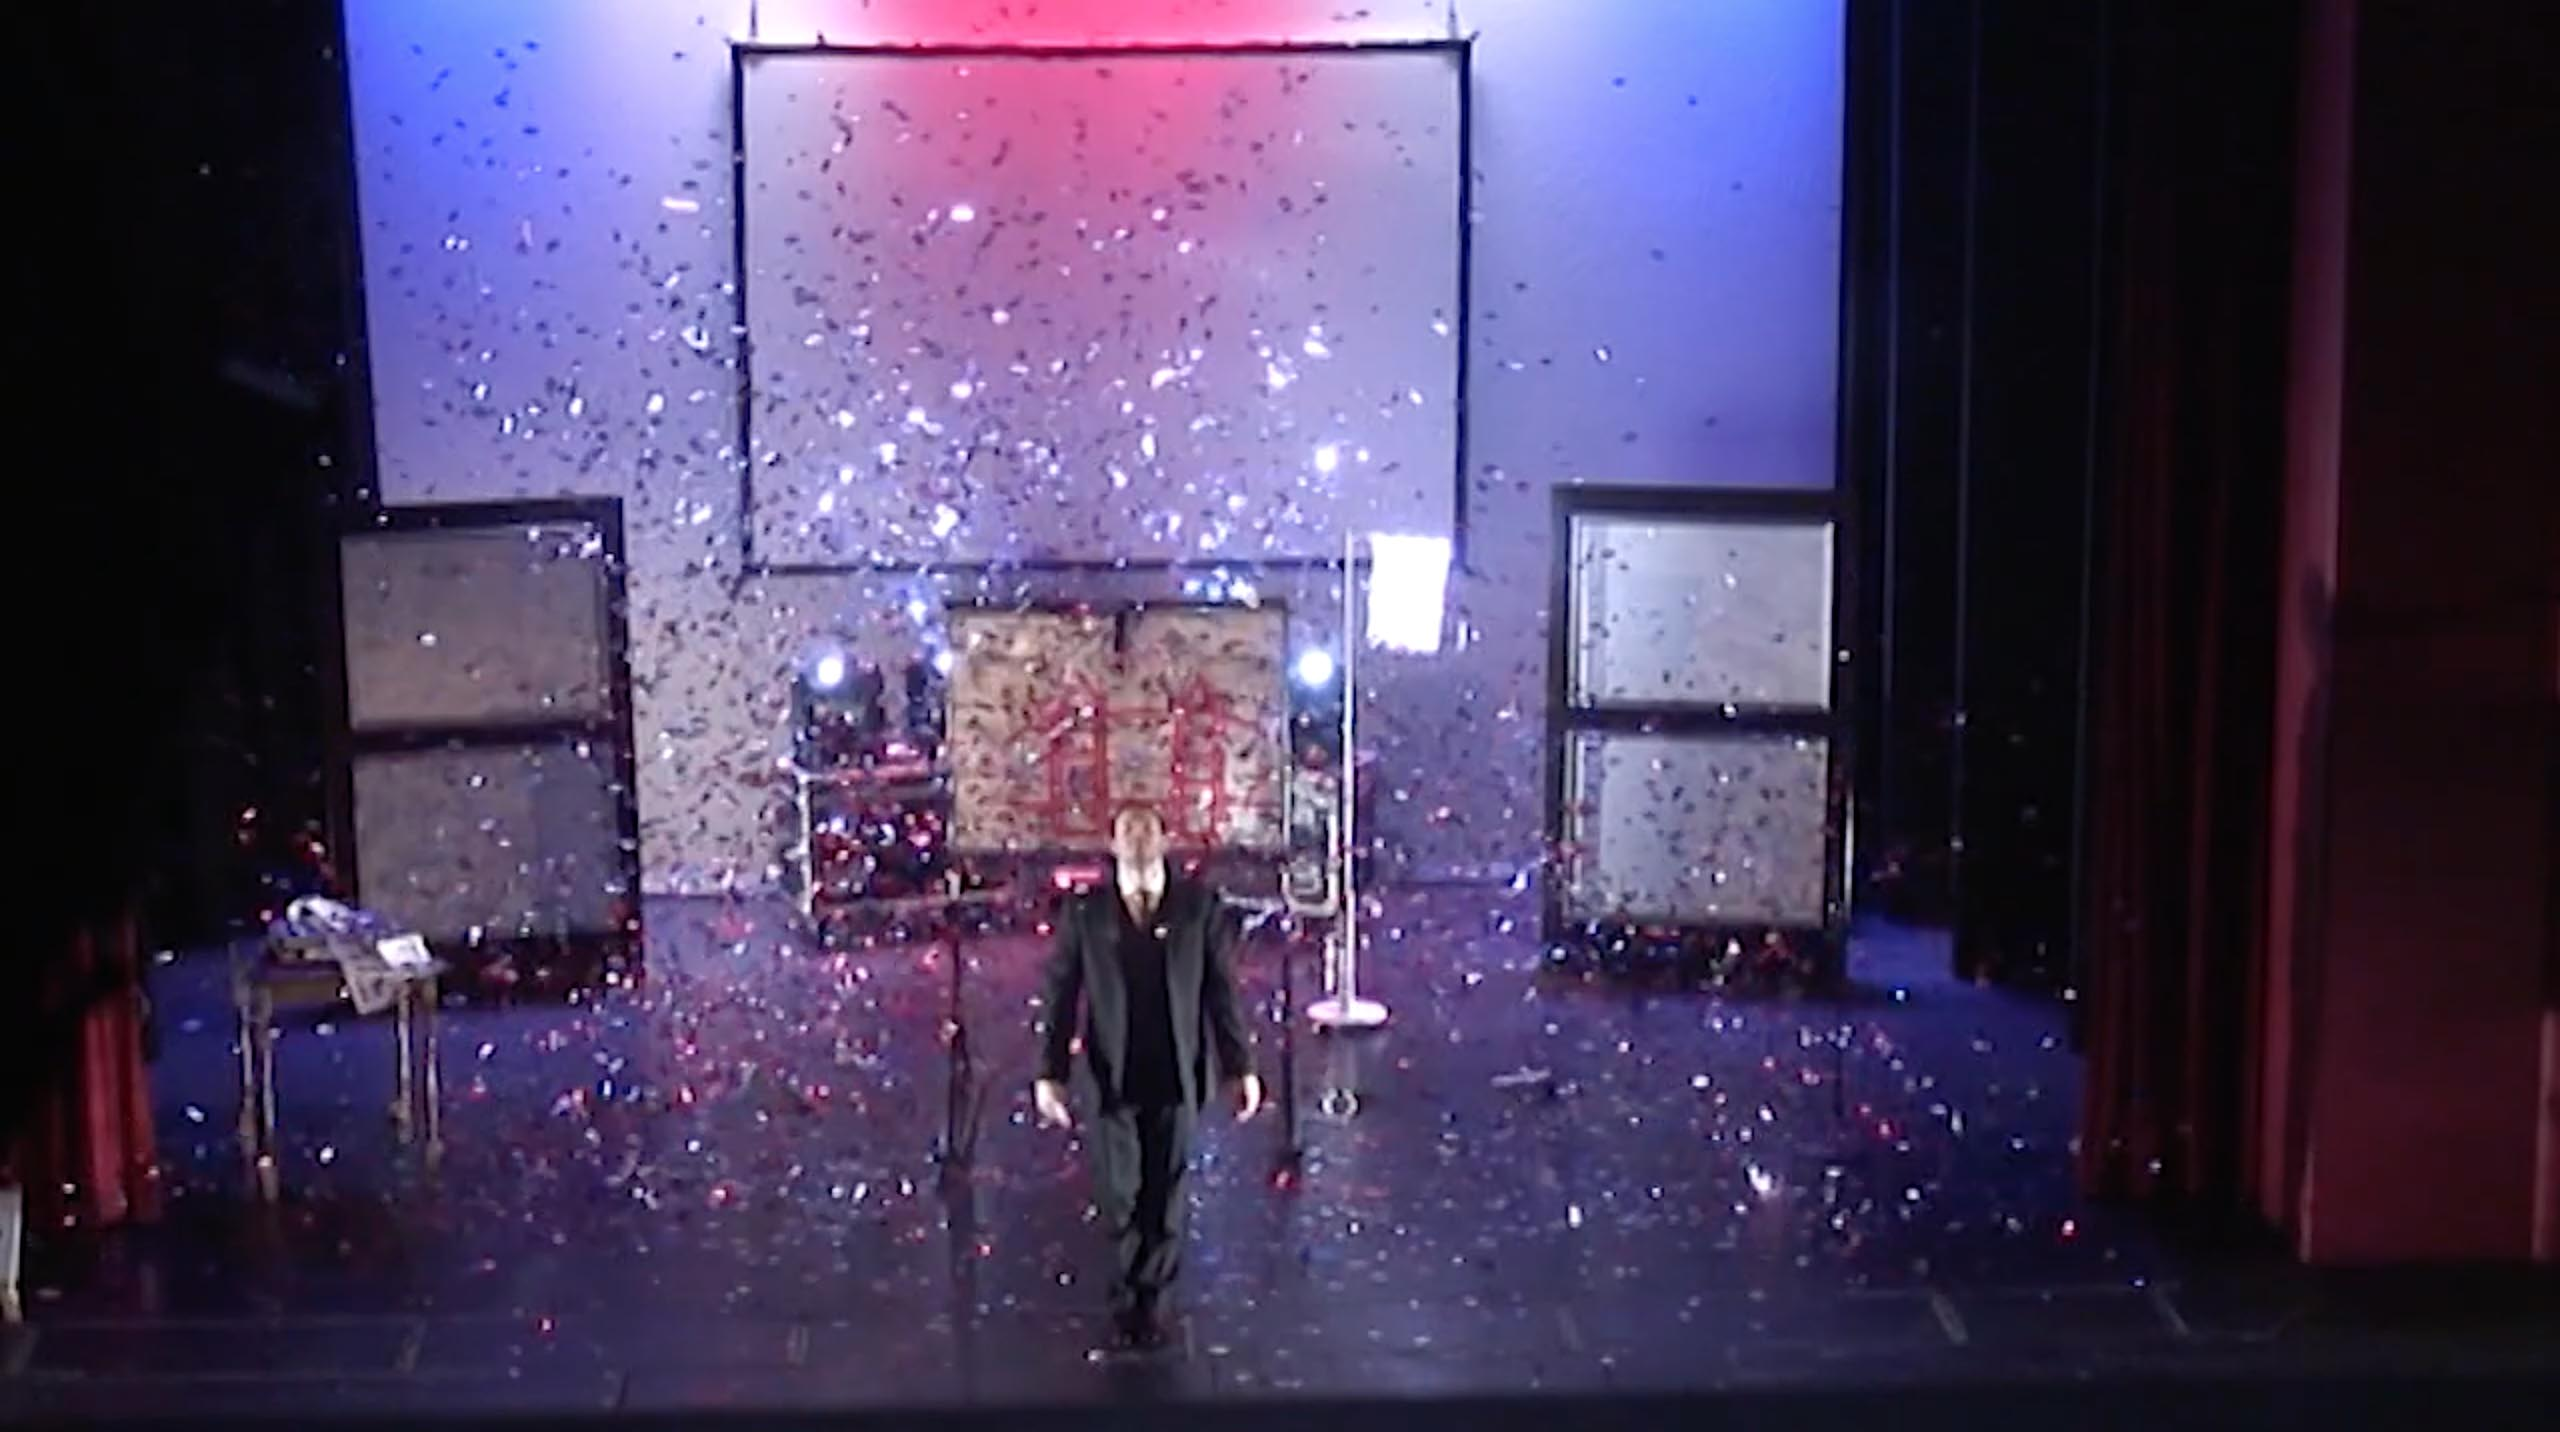 Confetti falls in finale of theatre show mind games